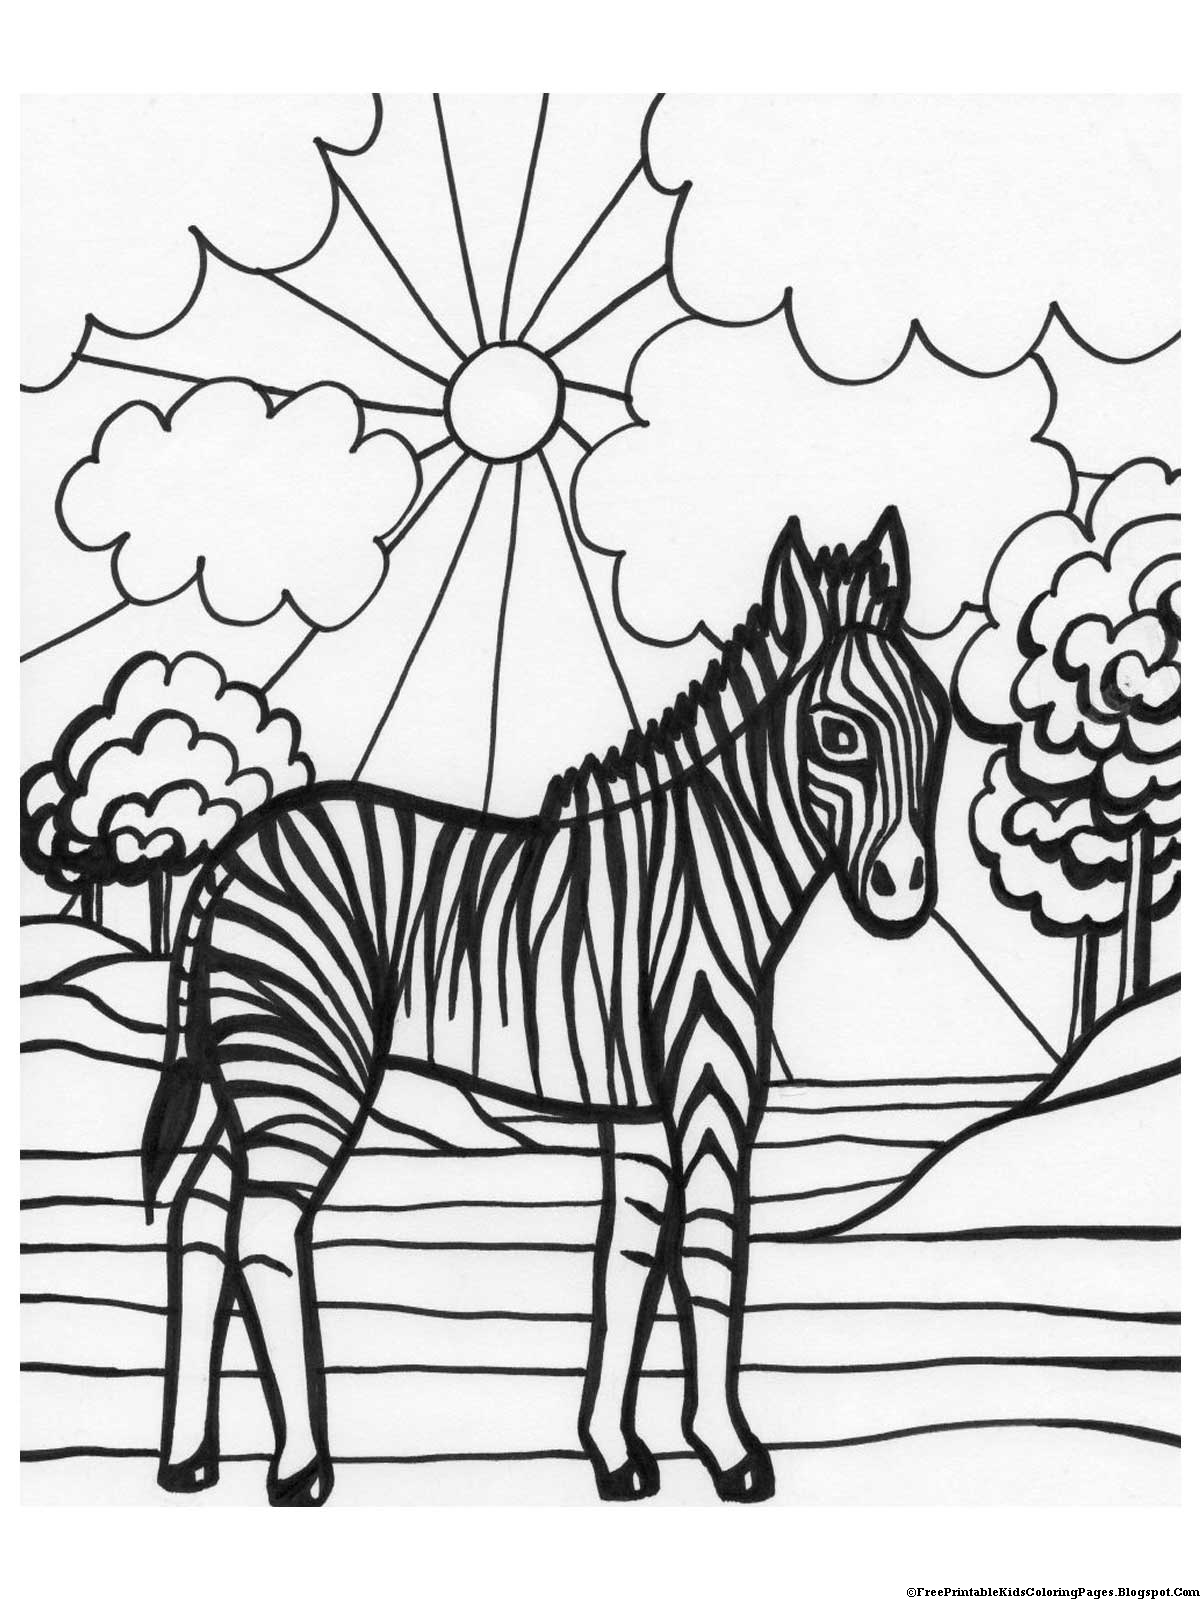 zebra print coloring pages free printable zebra coloring pages for kids animal place zebra coloring pages print 1 1